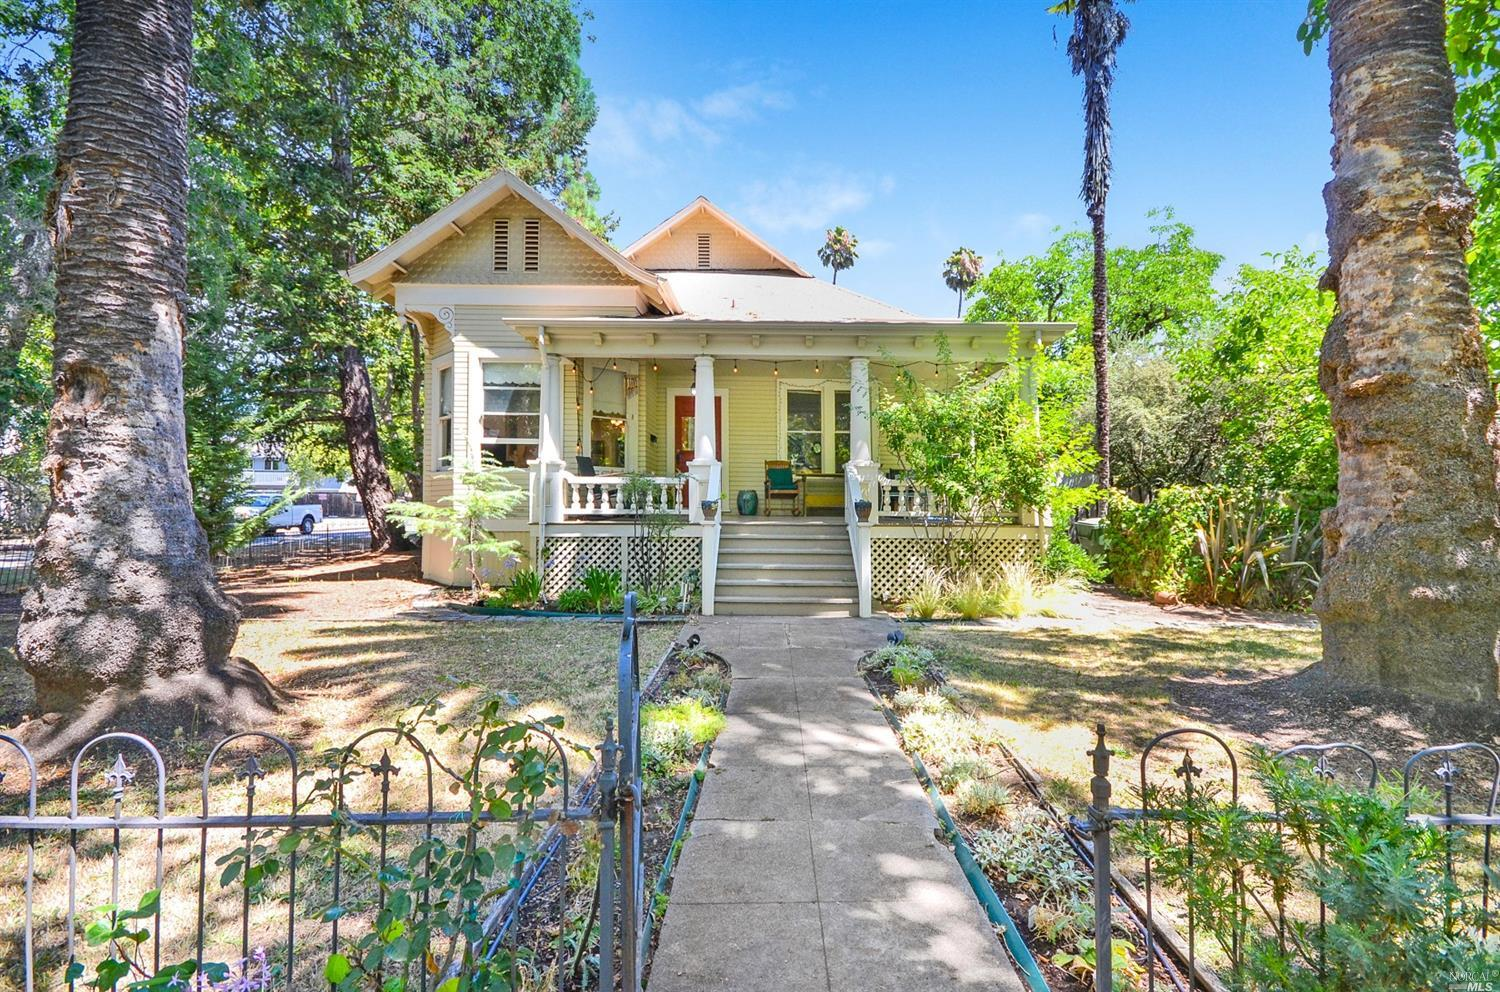 1905 Queen Anne Victorian one block from downtown Calistoga. Community Commercial Zoning. Mixed use or Commercial usage possible. Possible upstairs addition potential.  Offices,Medical,Retail and or live work opportunity. Large open front porch. Tile bathroom. Fireplace. Large lot.